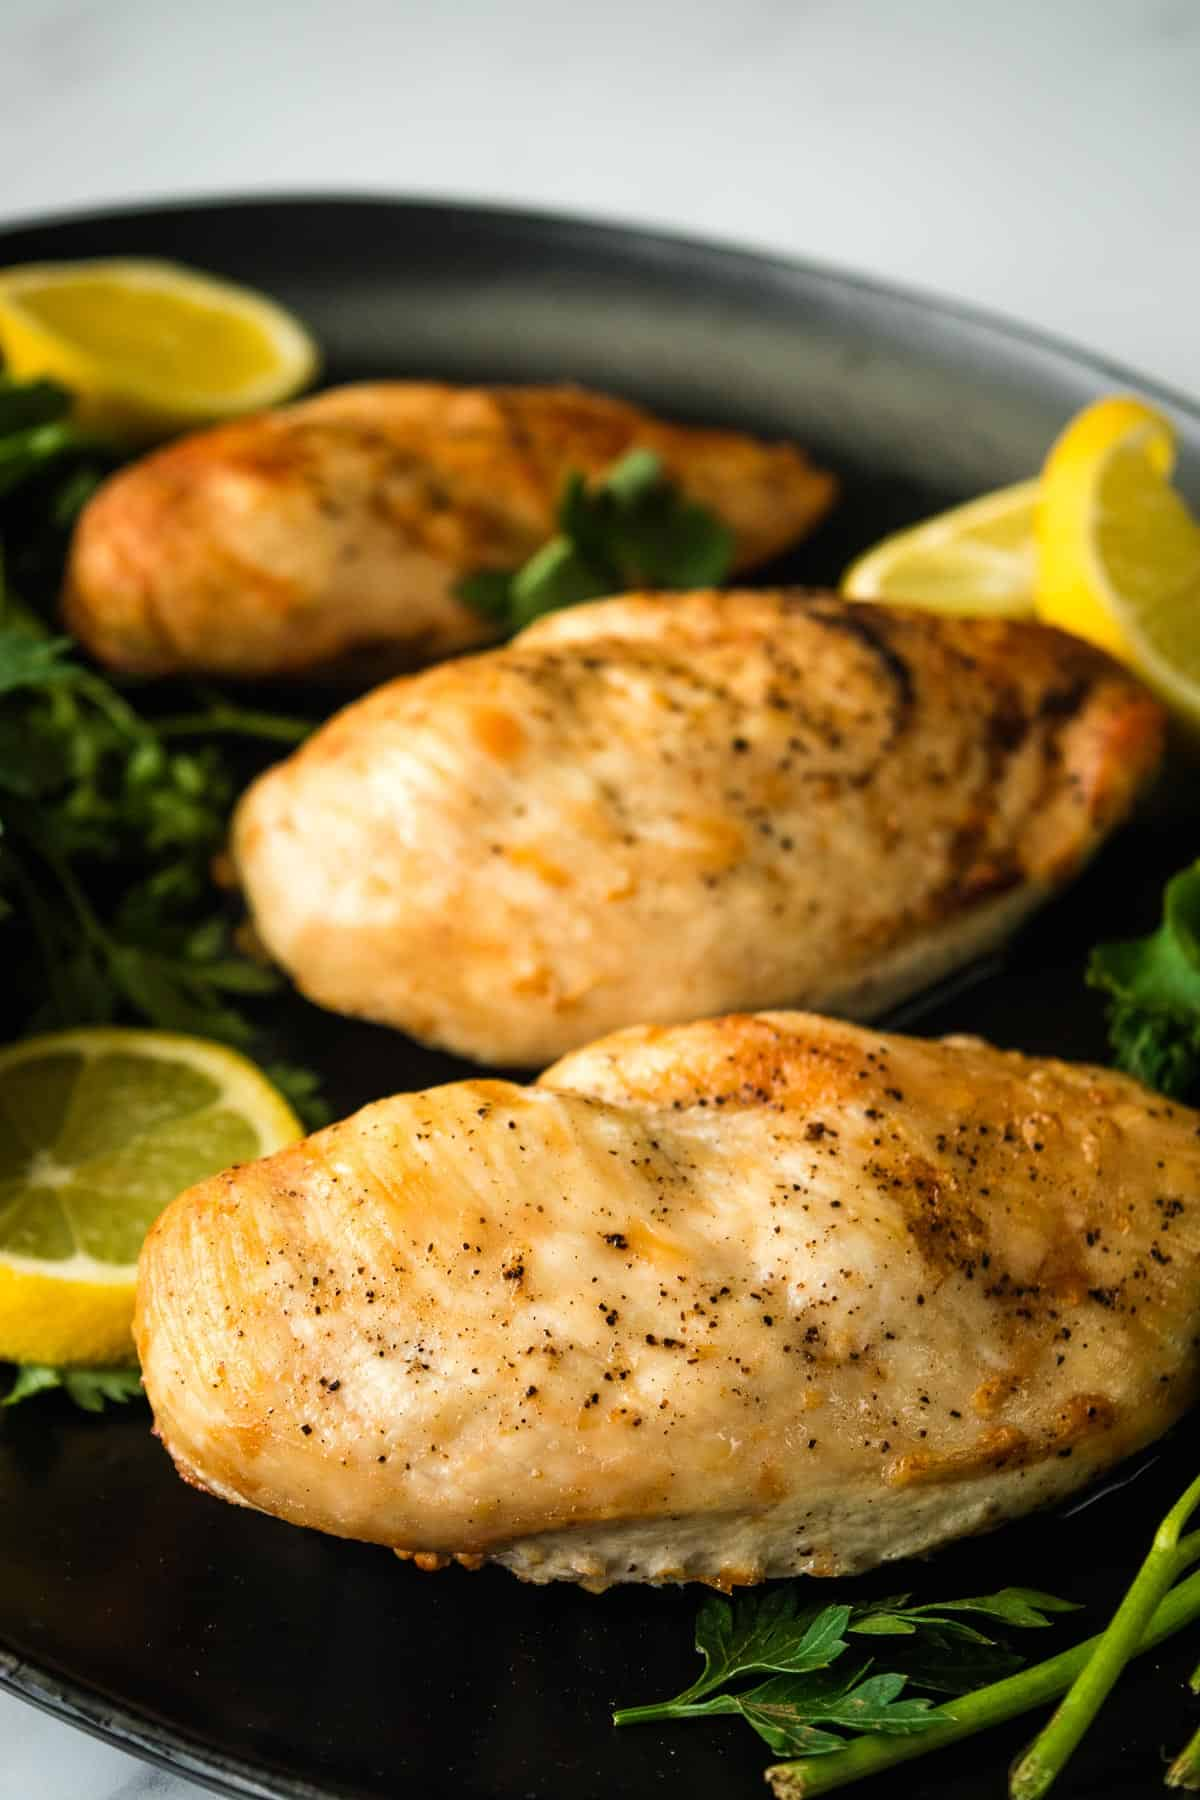 Juicy chicken breasts on a plate with parsley.